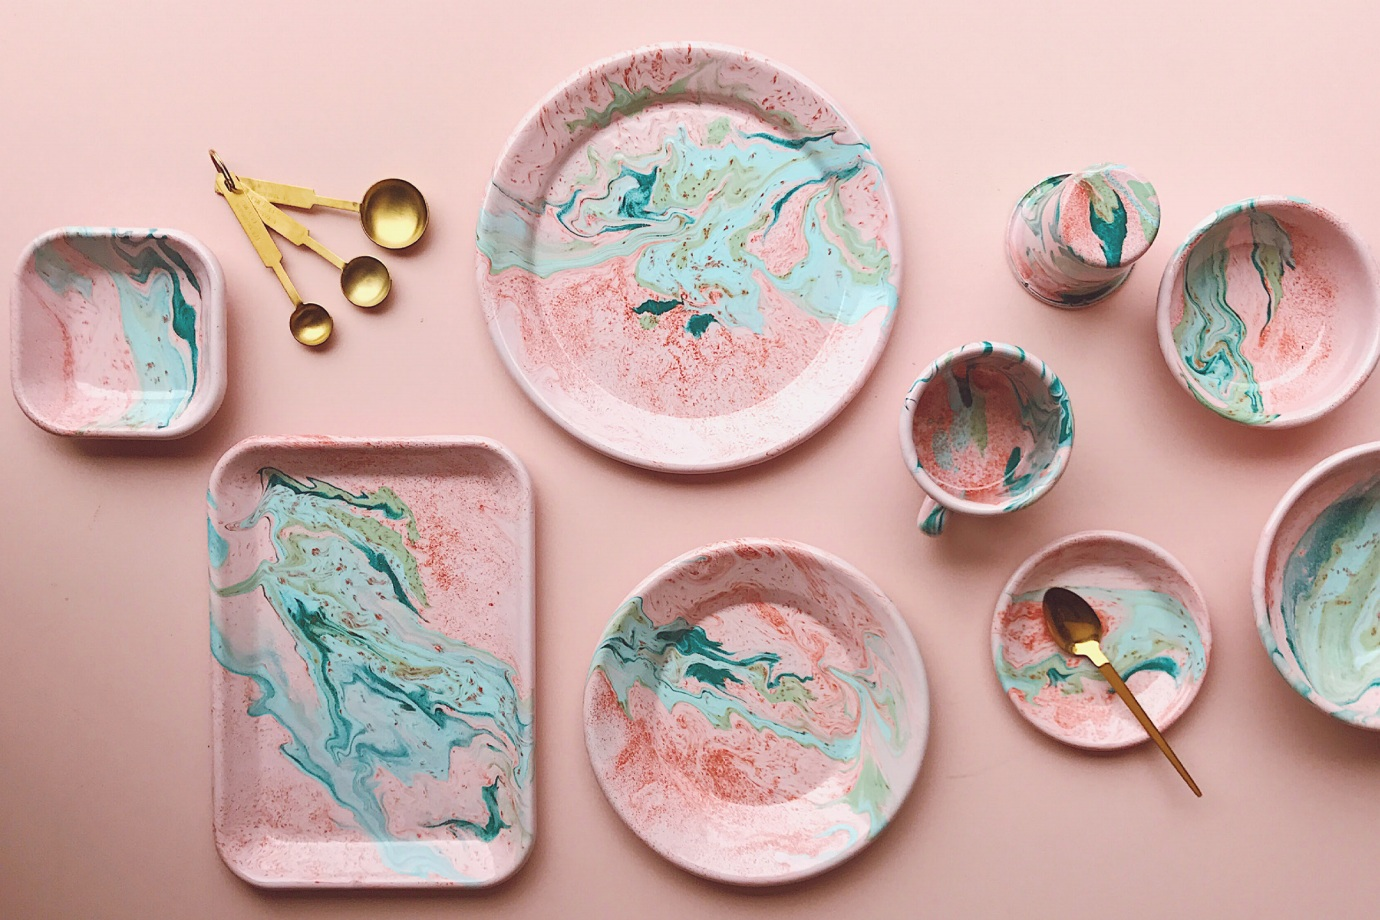 New Marble by Bornn Enamelware  - Official picture